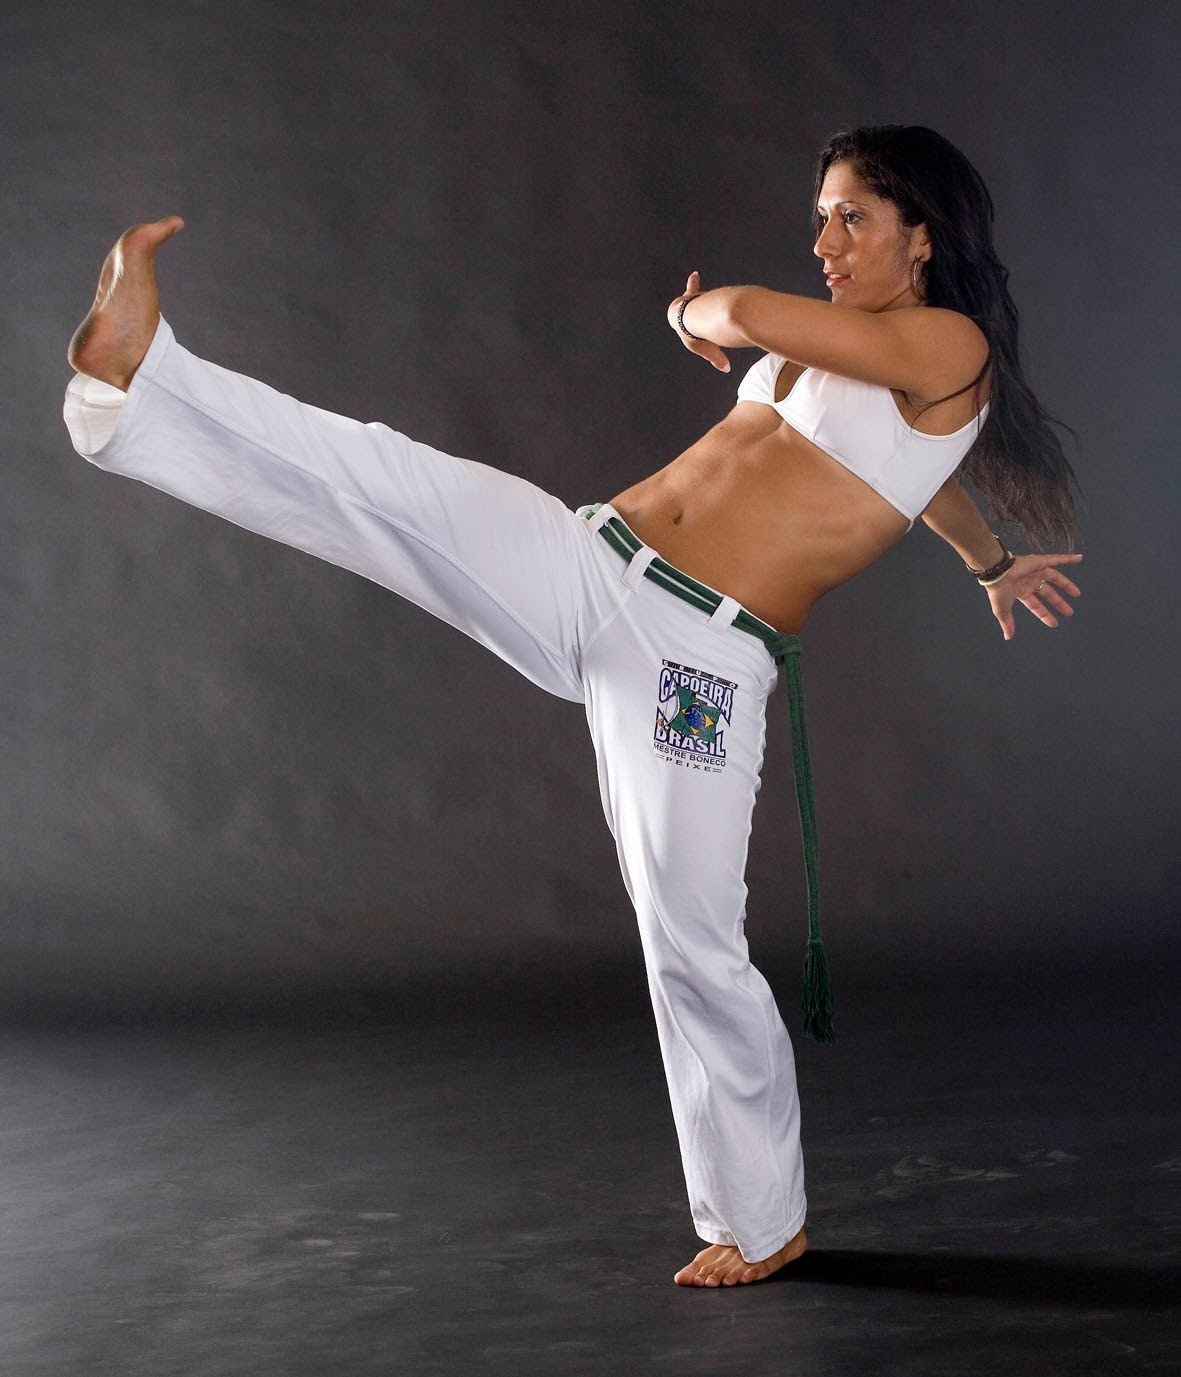 Consider, that Ls women who know martial arts